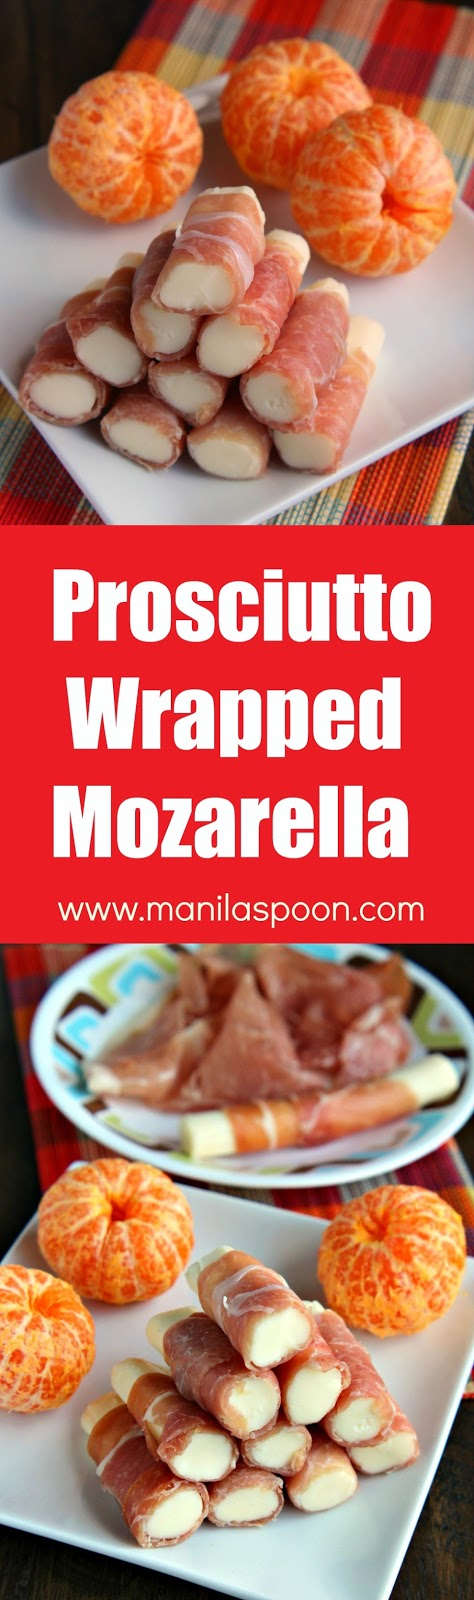 No fuss appetizer that requires only 2 ingredients. Prosciutto-Wrapped Mozarella Sticks - you can't get any easier than this! It's also great as a low-carb, protein-rich snack! | manilaspoon.com